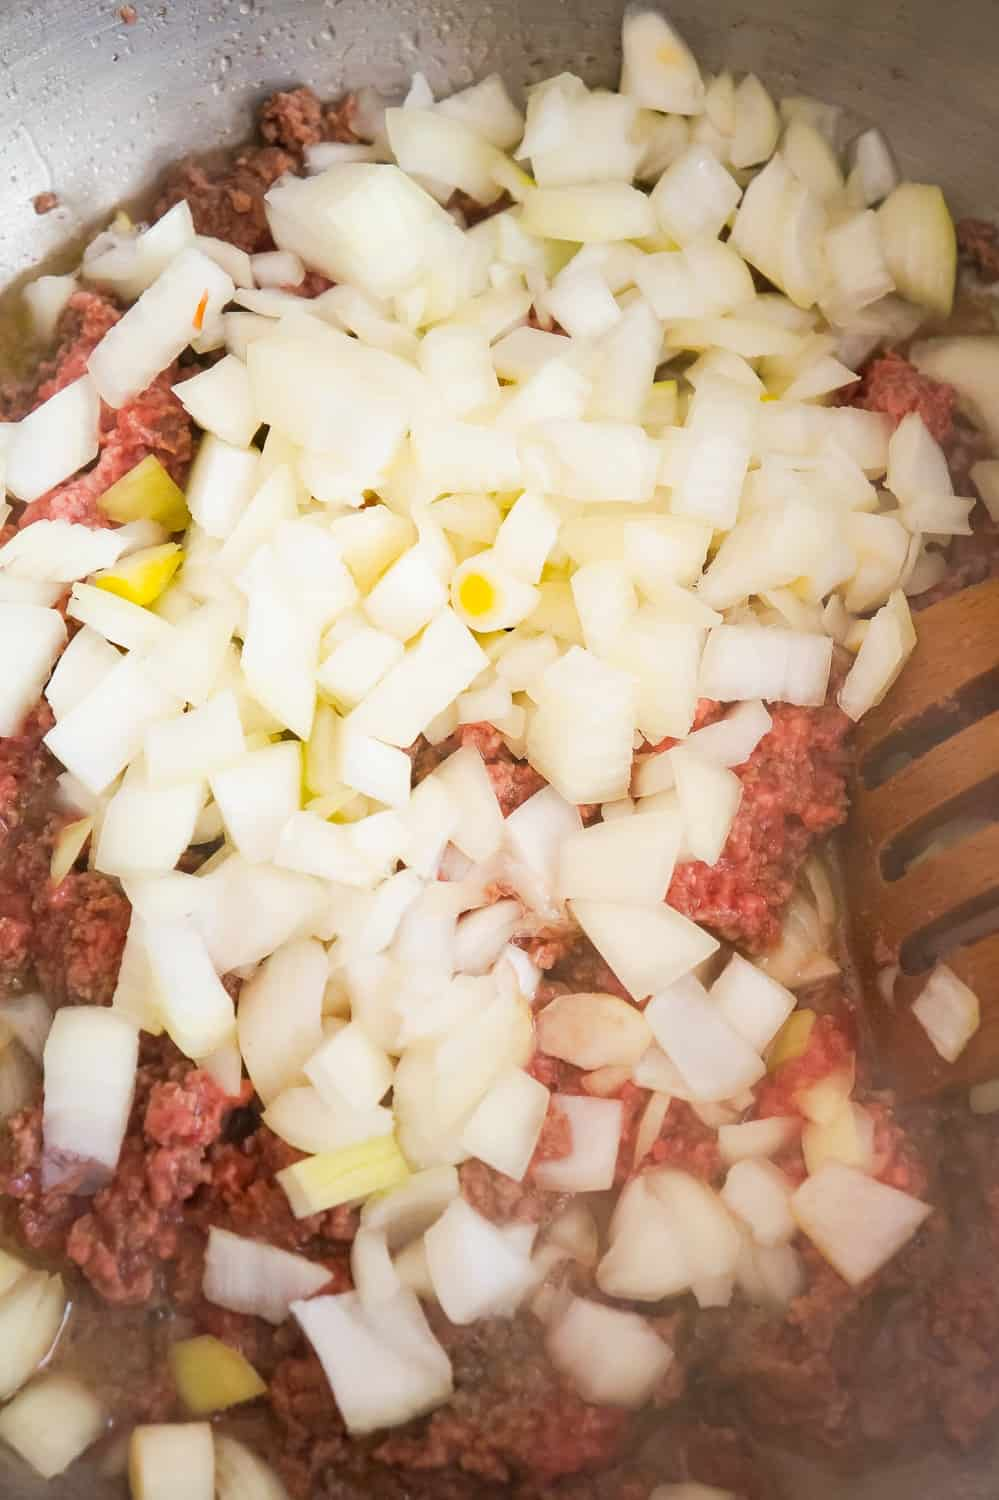 diced onions and ground beef in a pan